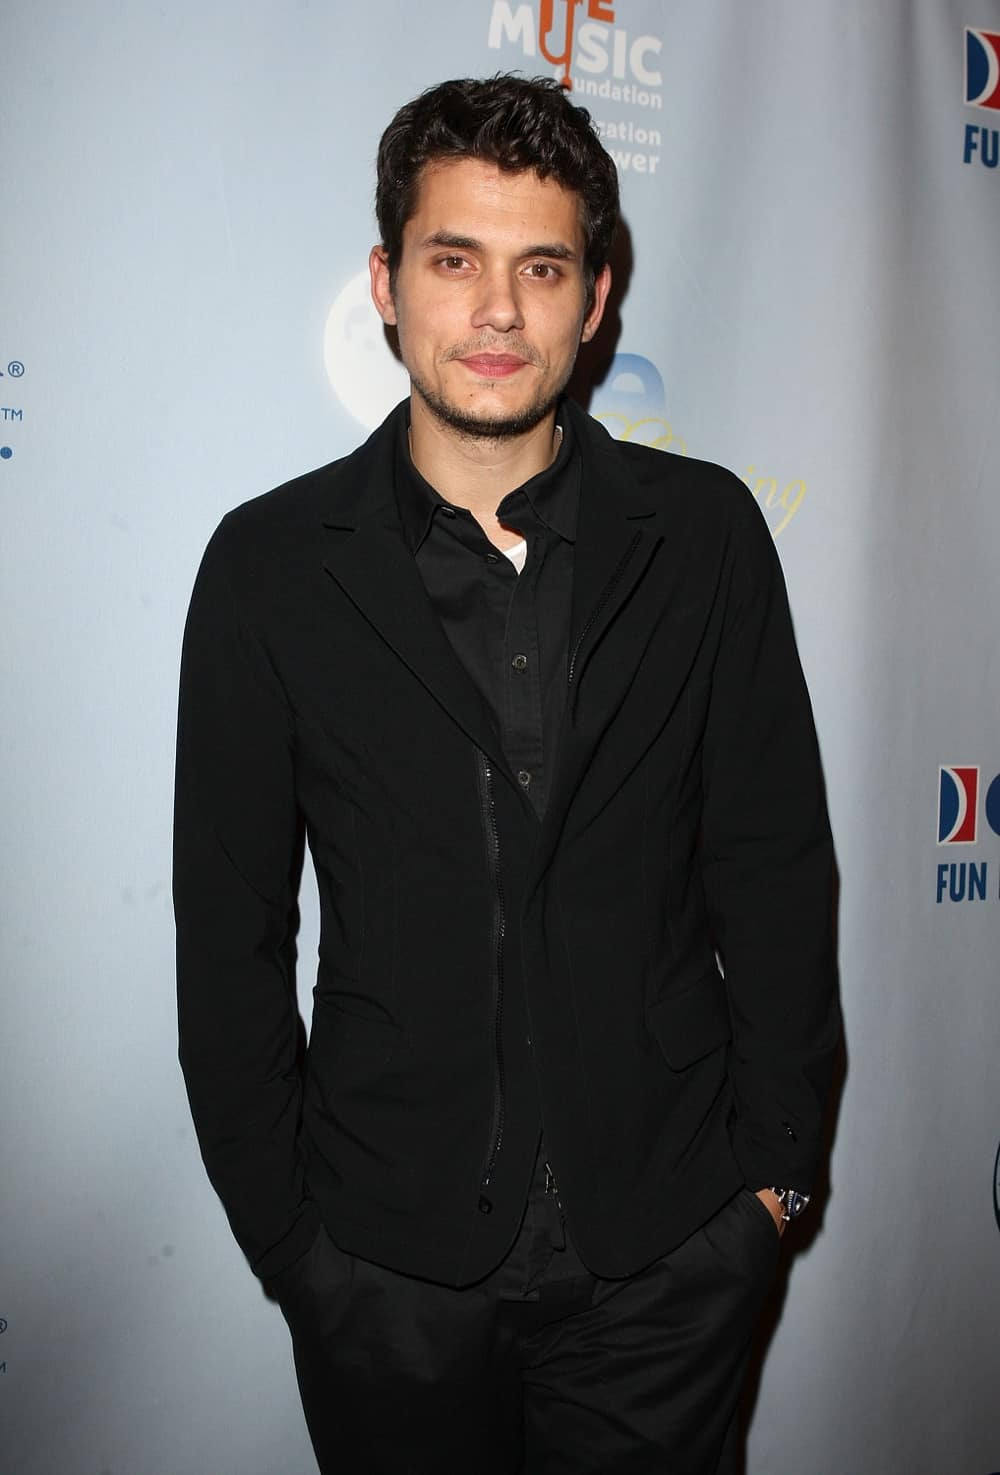 John Mayer One Splendid Evening, Sponsored By Carnival Cruise Lines And Benefiting VH1 Save The Music Foundation - Red Carpet